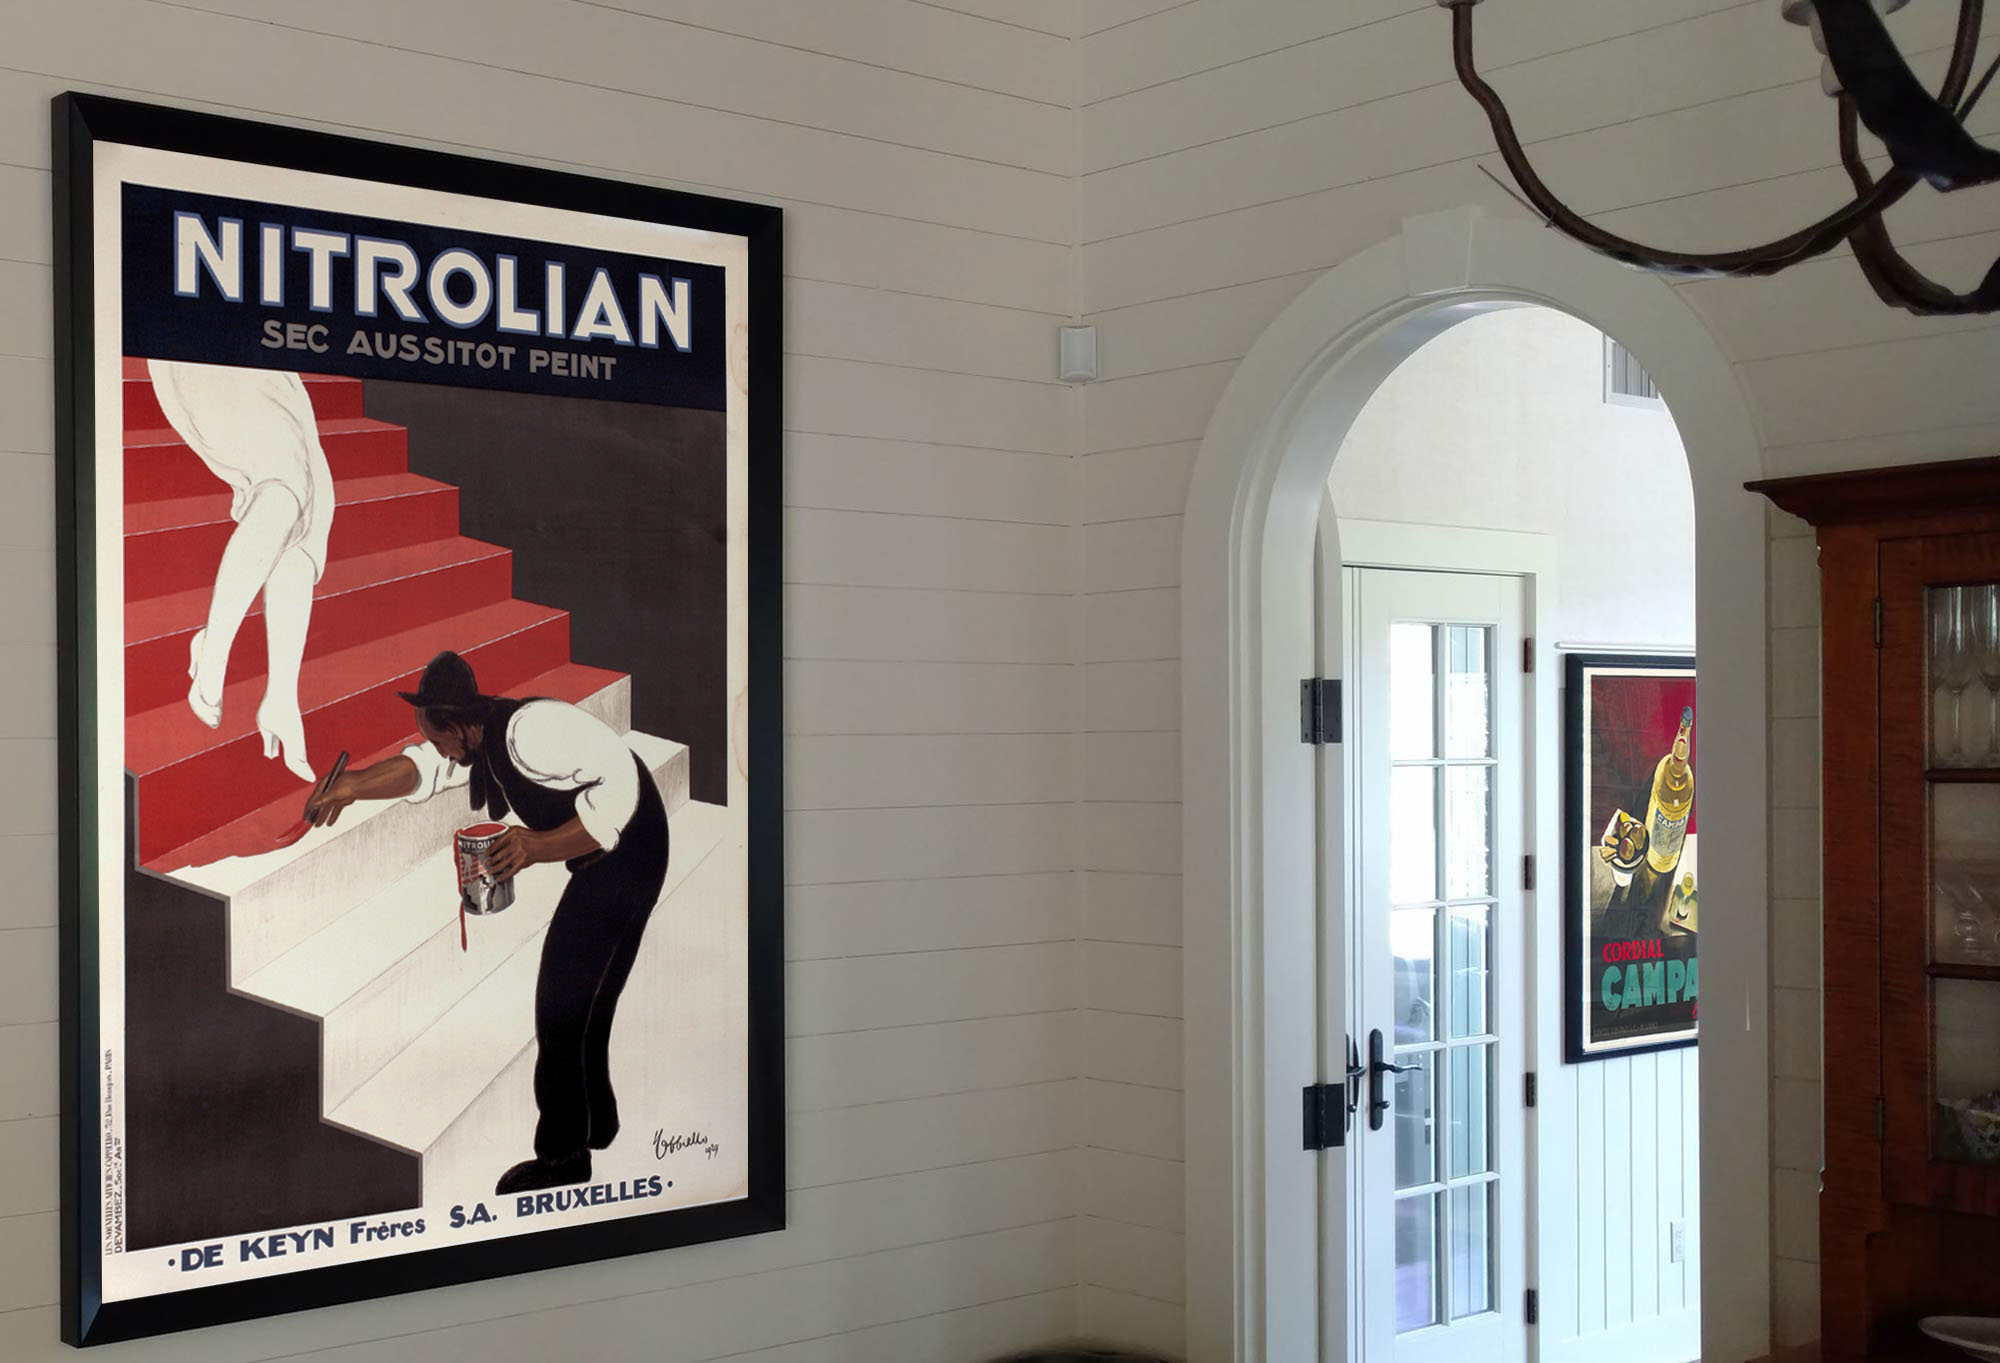 Paint advertisement poster near doorway; red, white, black, yellow